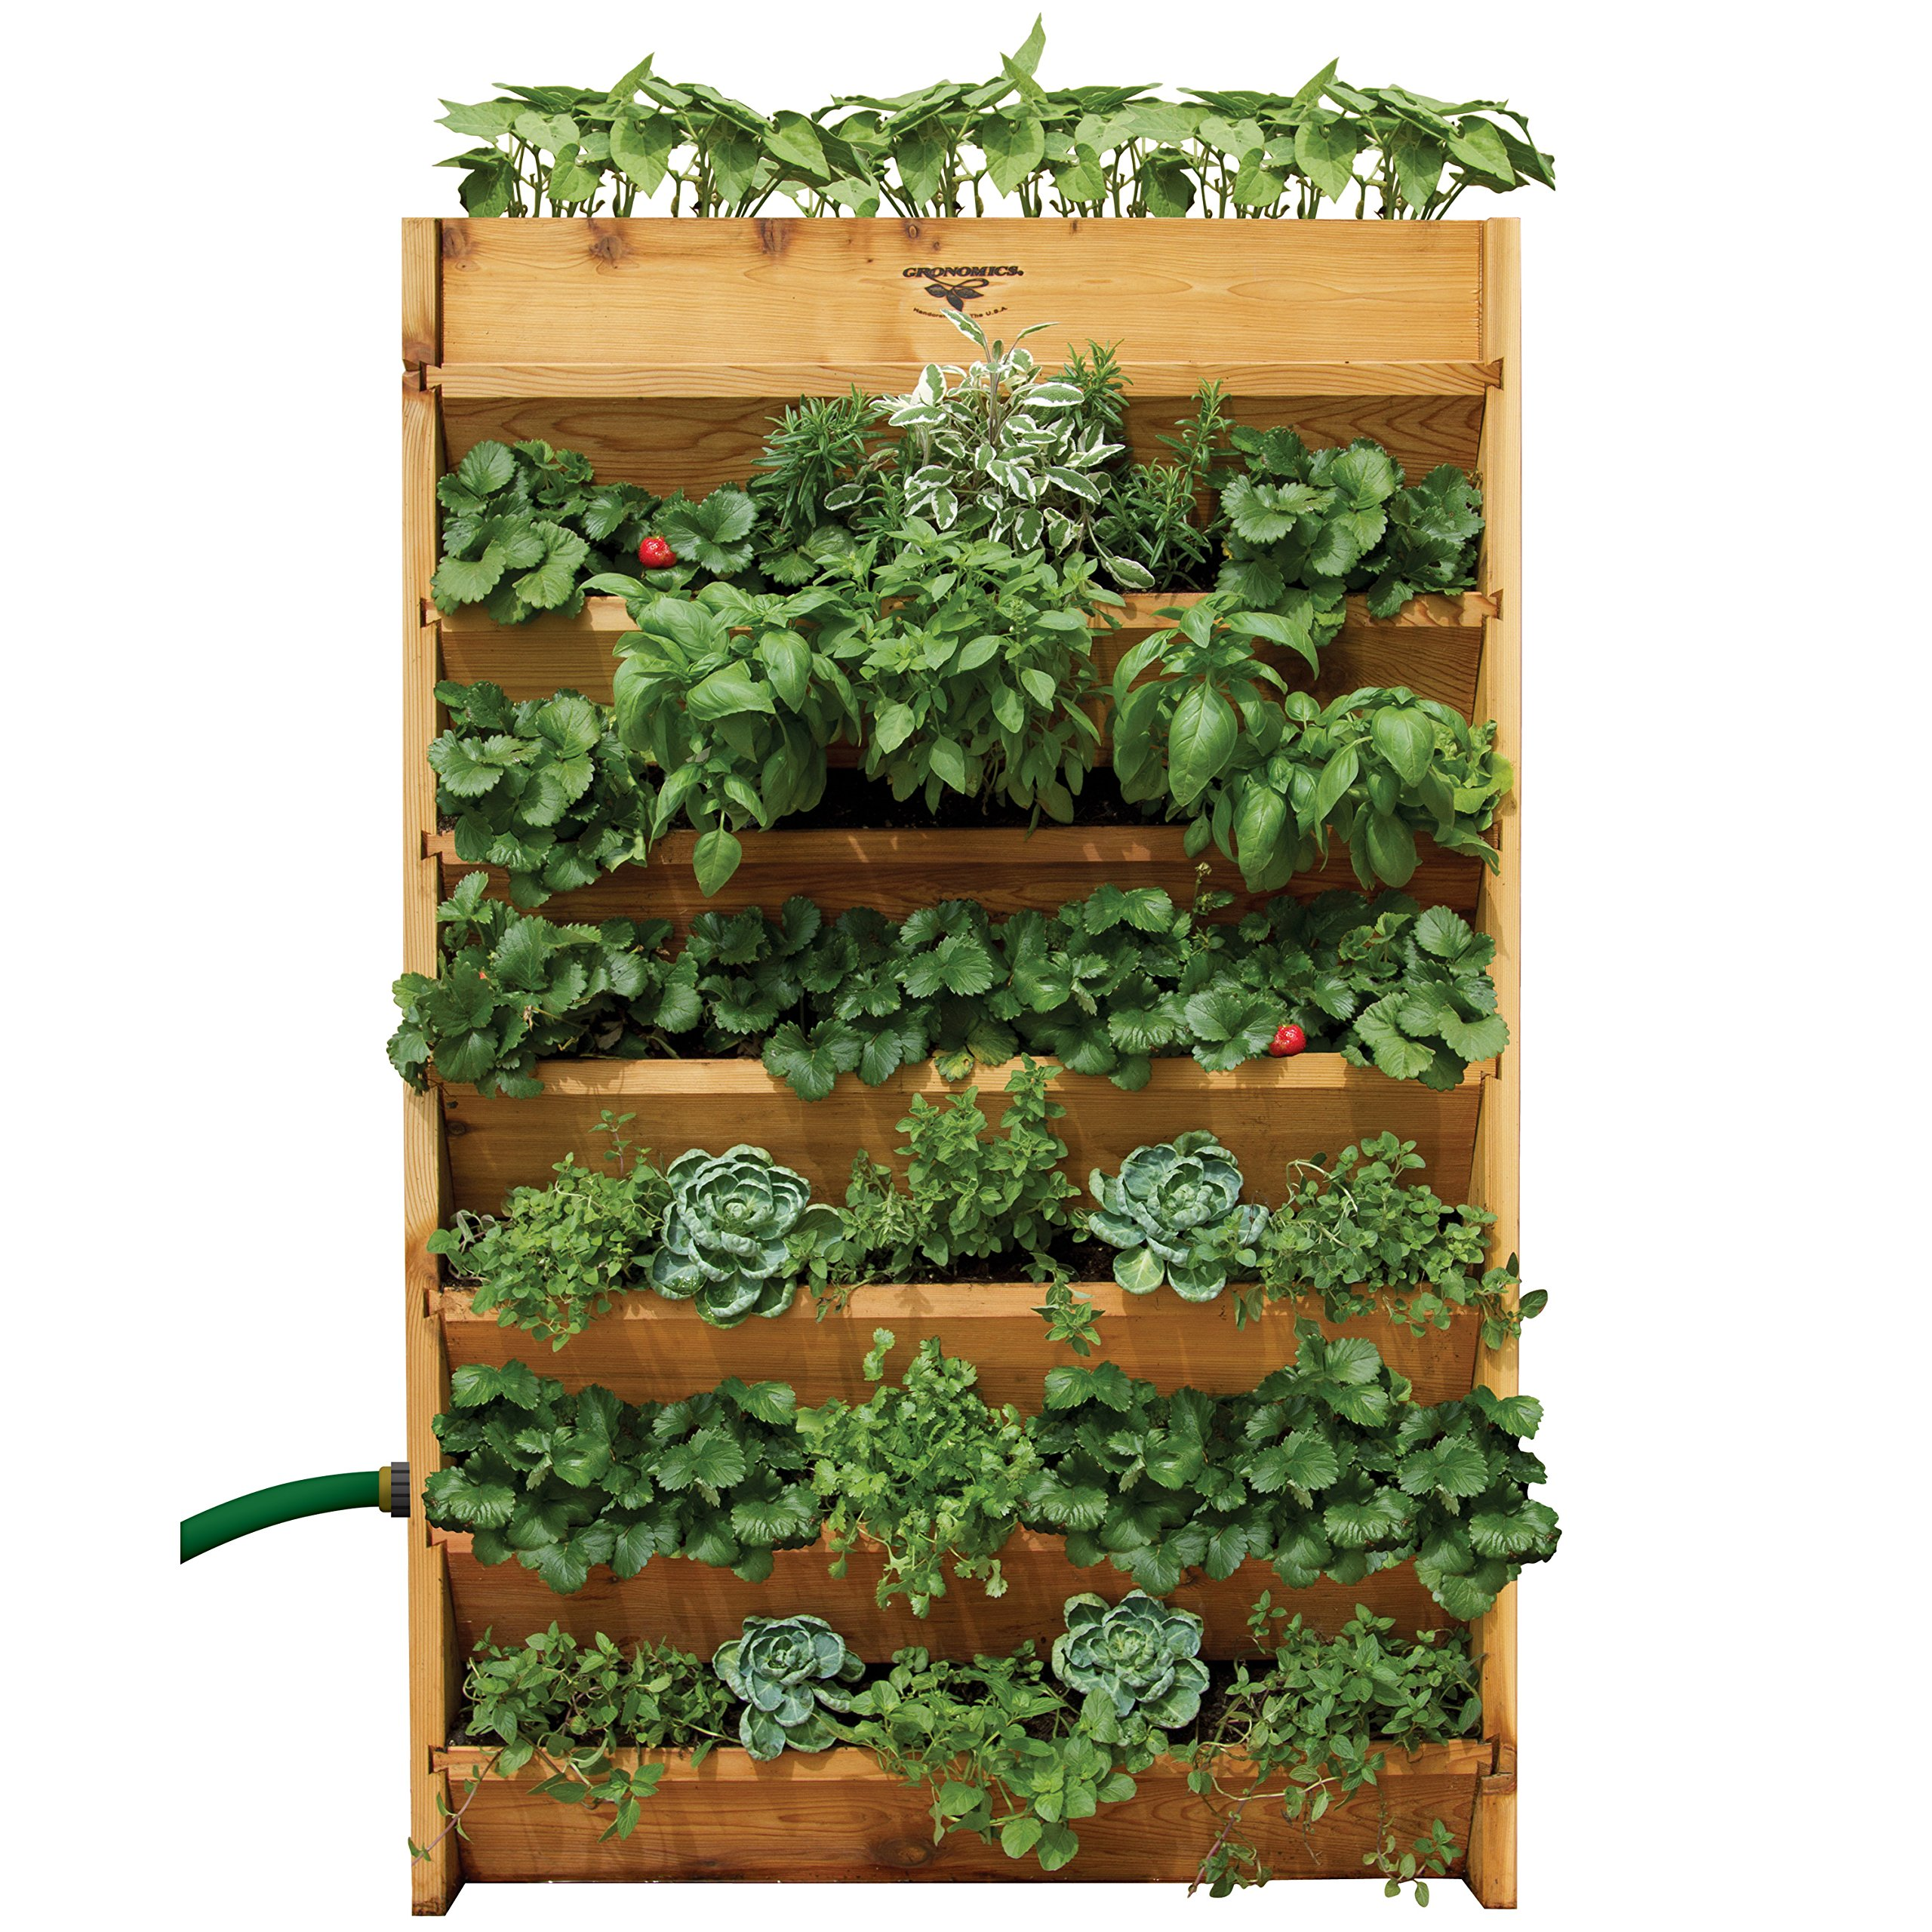 Gronomics VG 32-45UA Unassembled Vertical Garden, 32 by 45 by 9-Inch by Gronomics